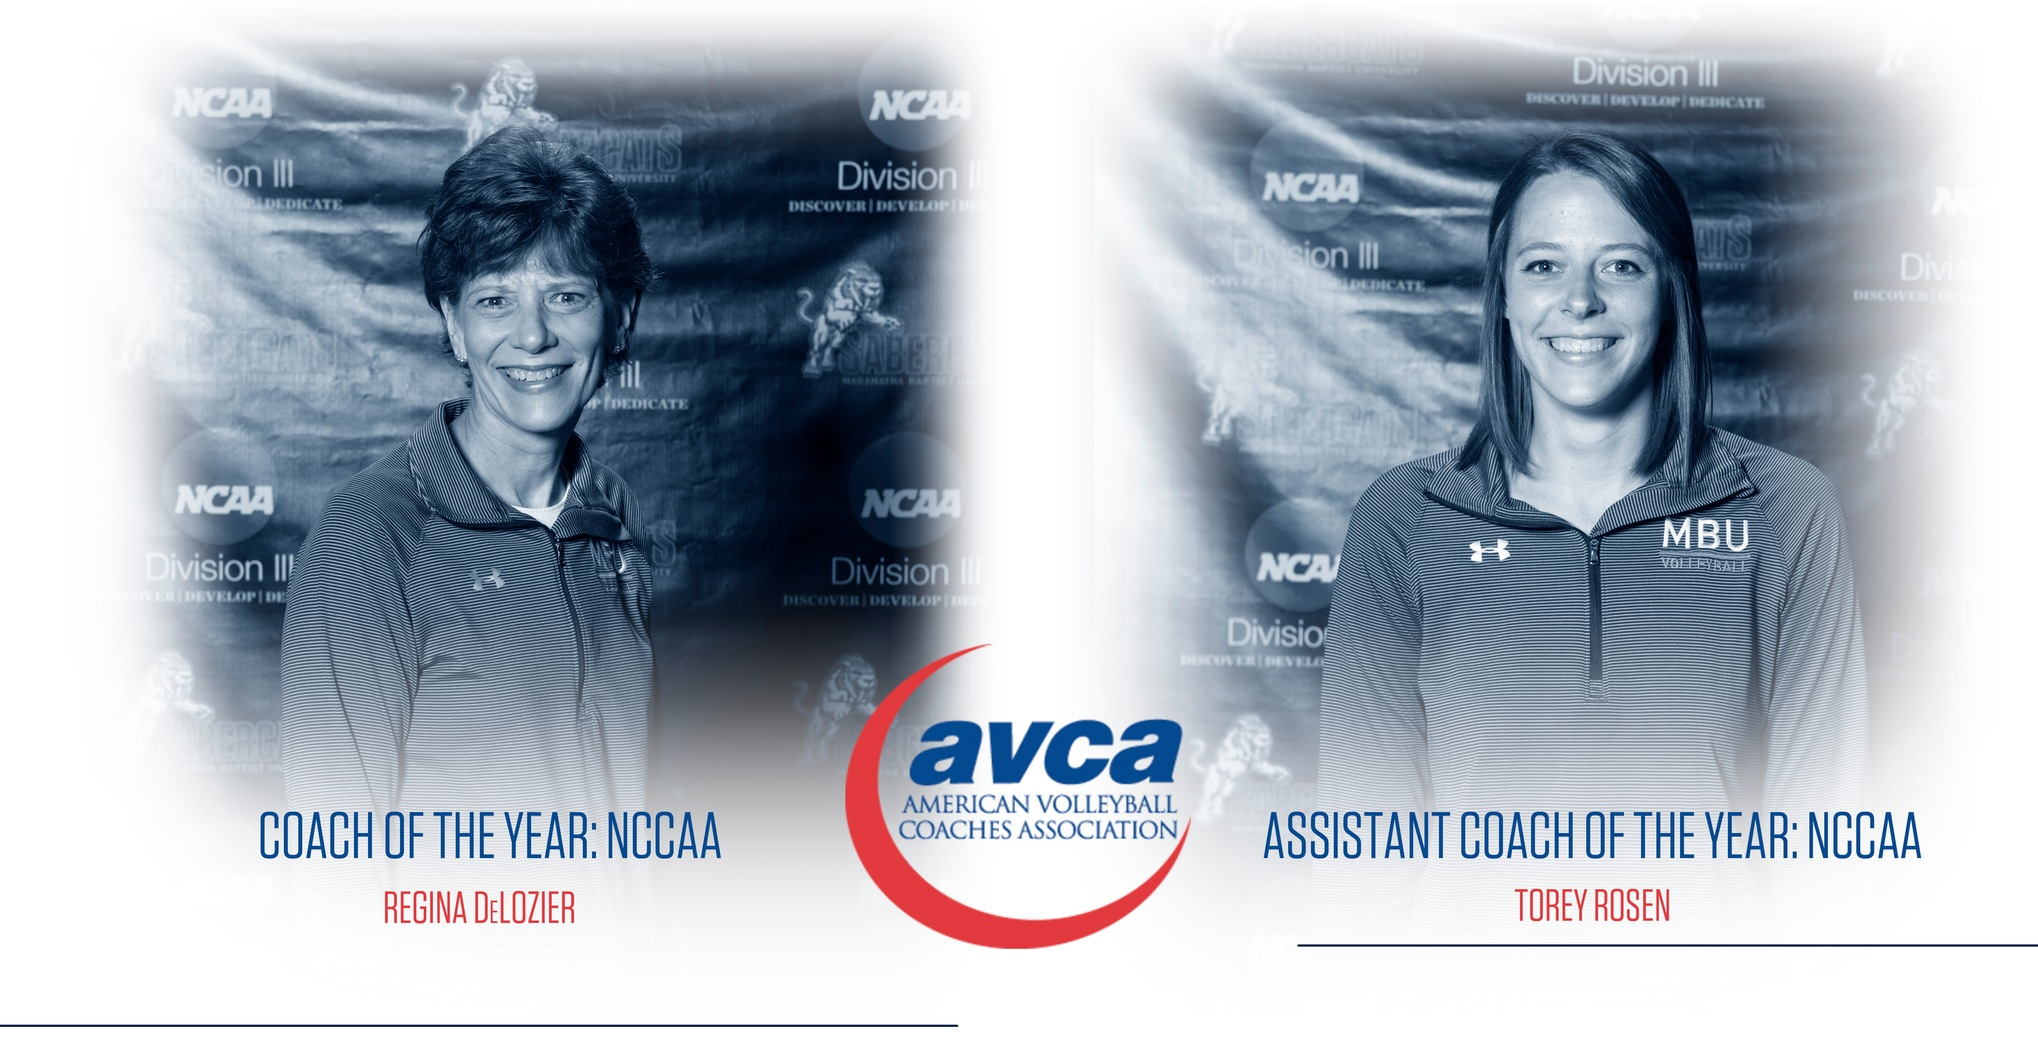 DeLozier, Rosen: Mother-Daughter Duo Tabbed as Coaches of the Year